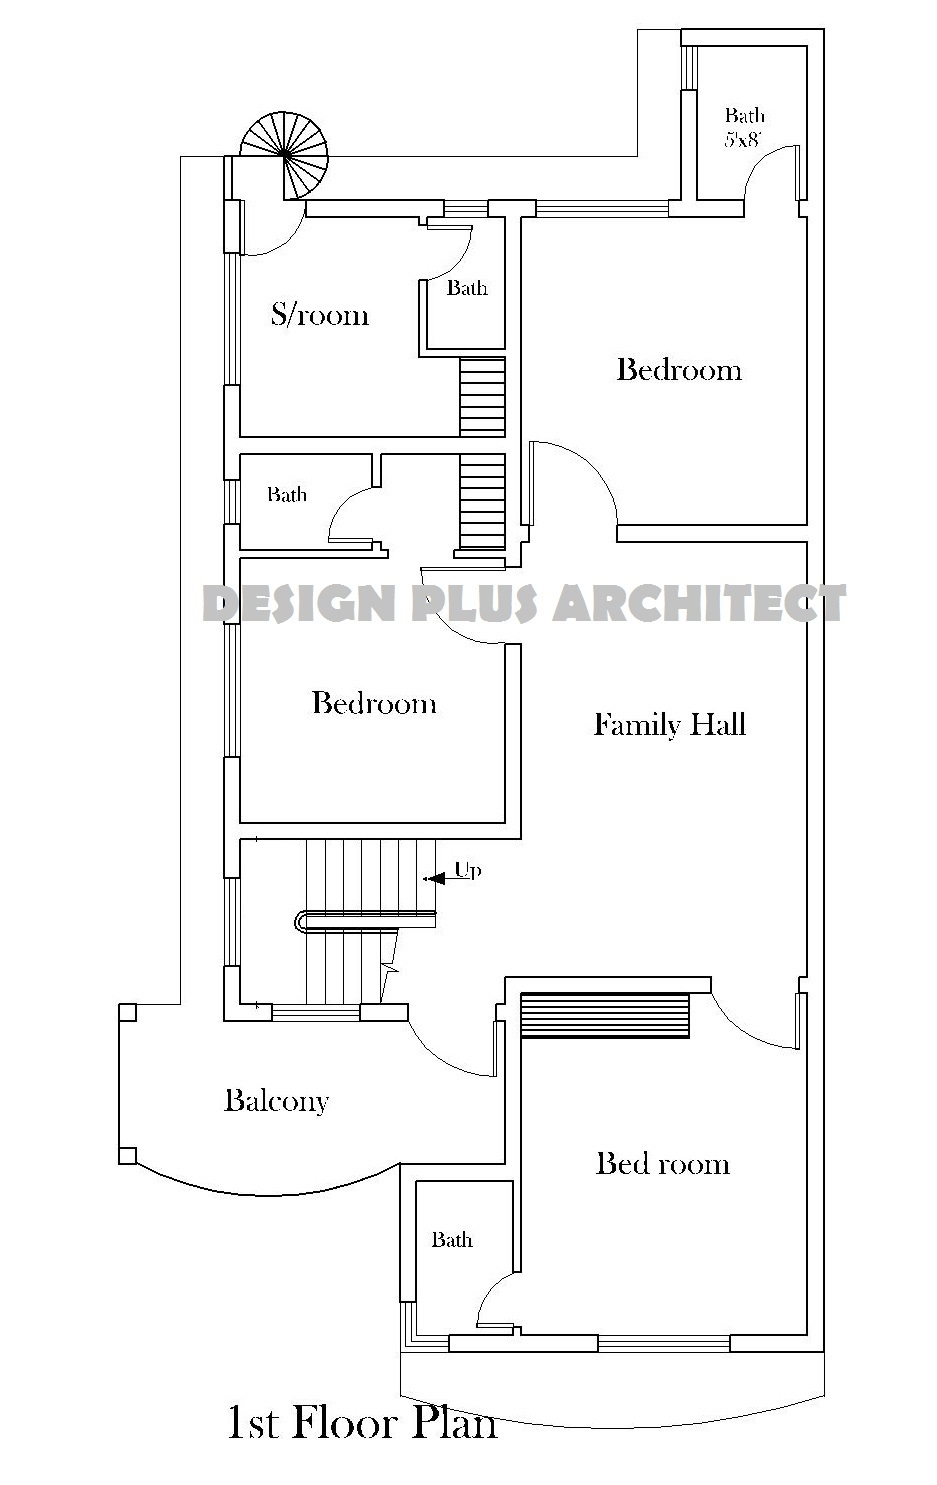 Home Plans In Pakistan Home Decor Architect Designer: house blueprint maker